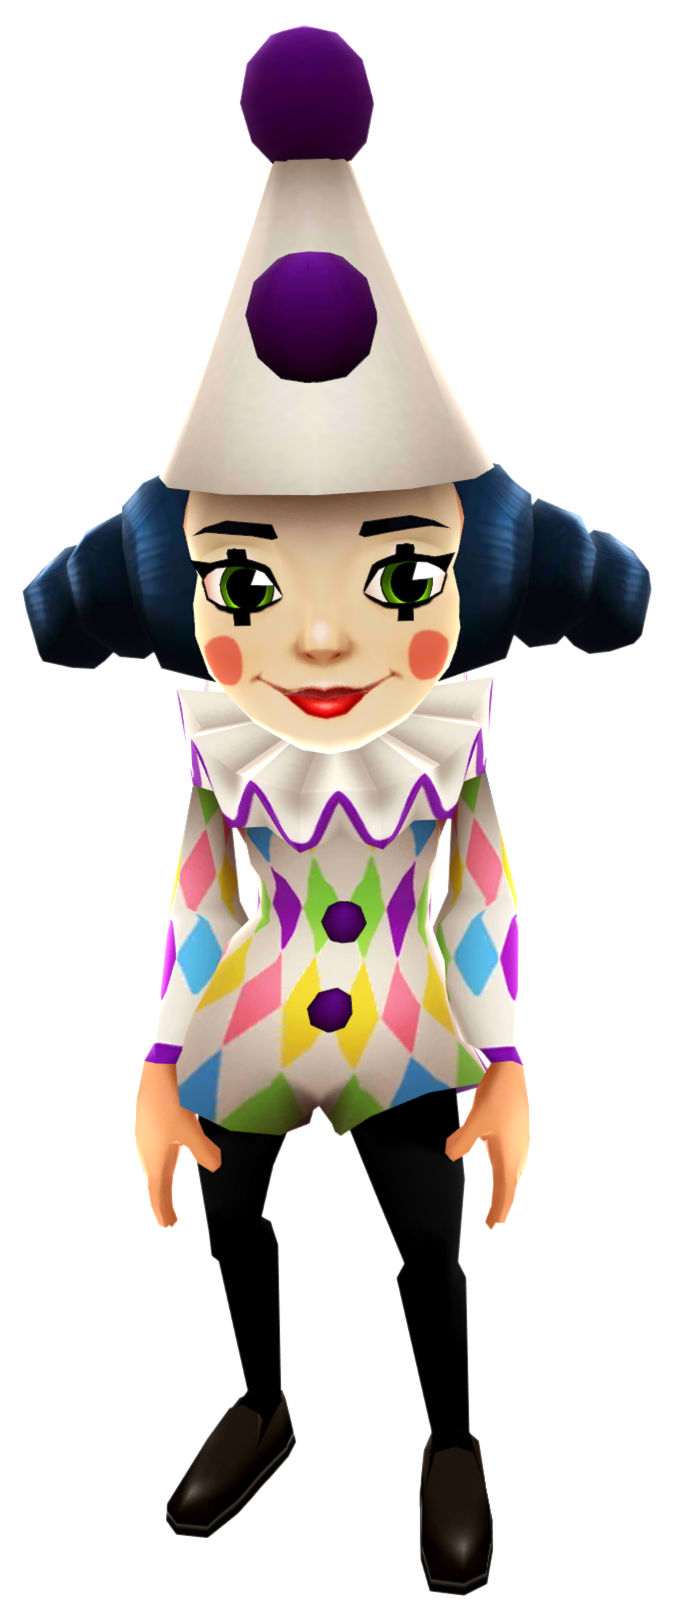 Coco characthers png. Subway surfers characters